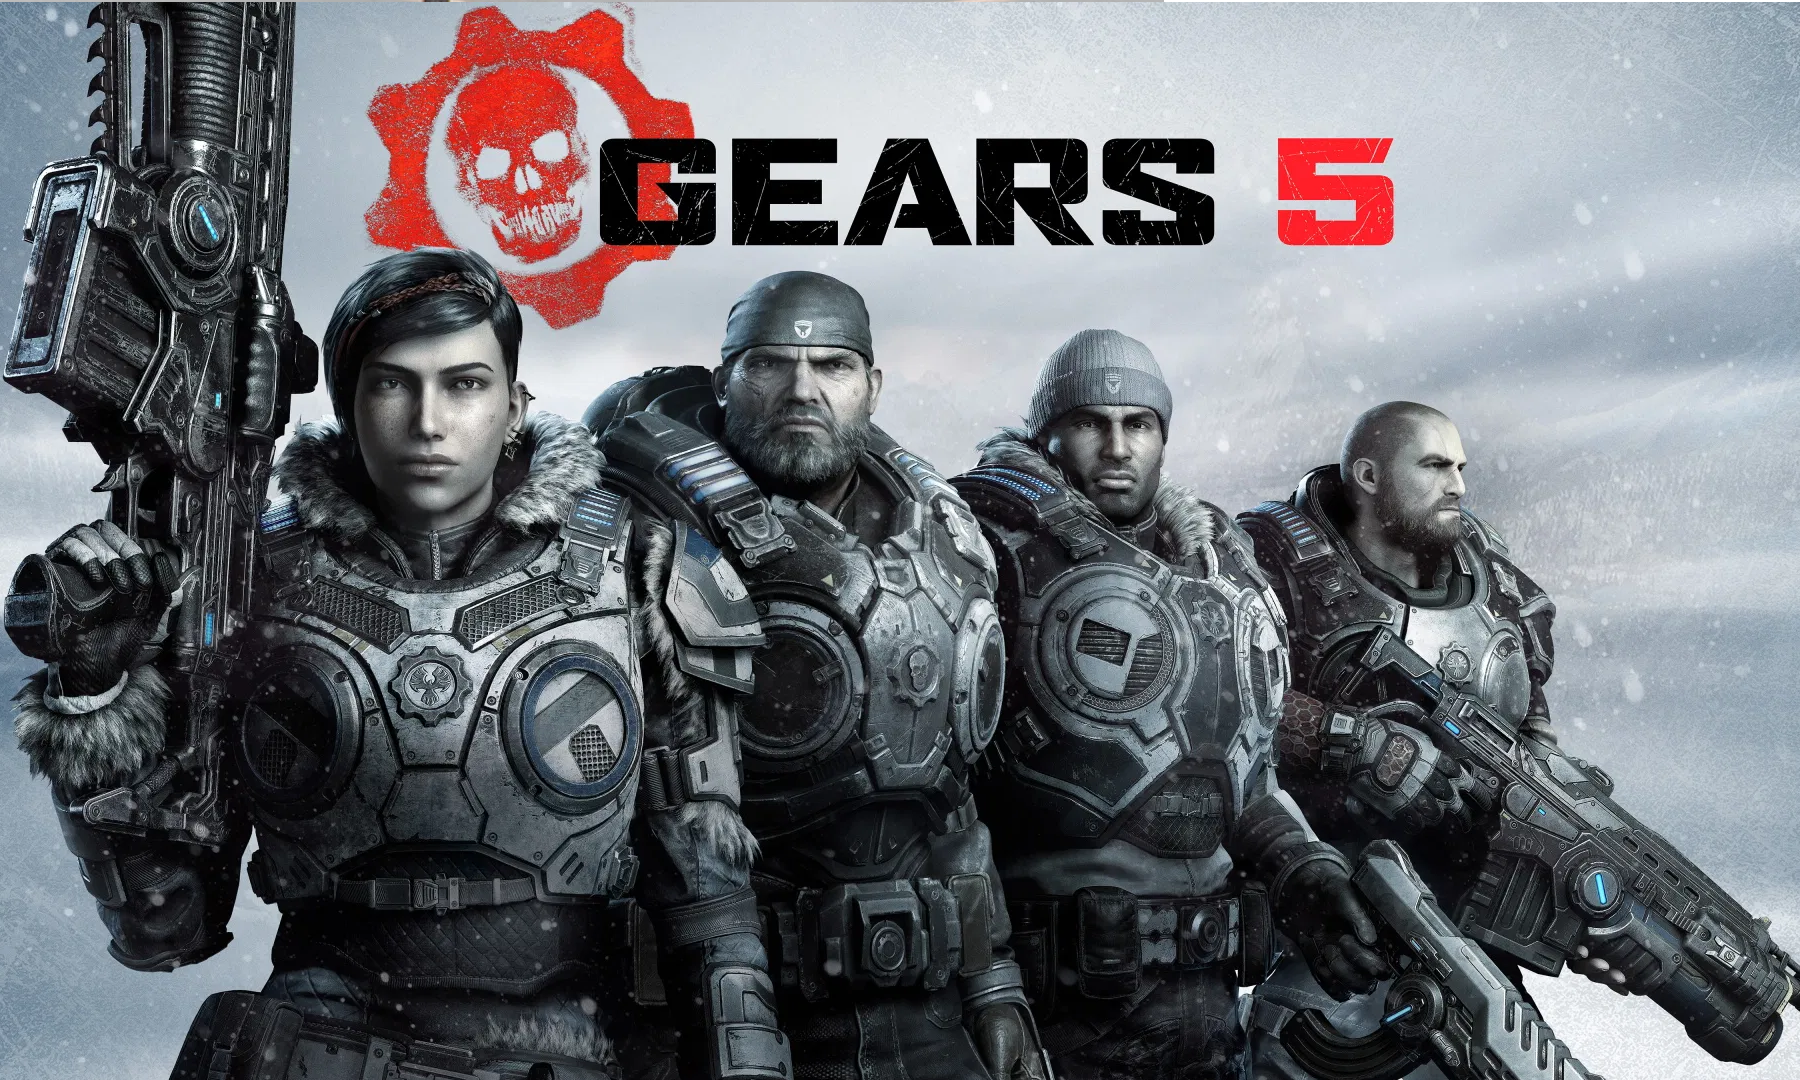 [FPS Benchmarks] Gears 5 on NVIDIA GeForce GTX 1650 [40W and 50W] – the 50W version is 22% faster